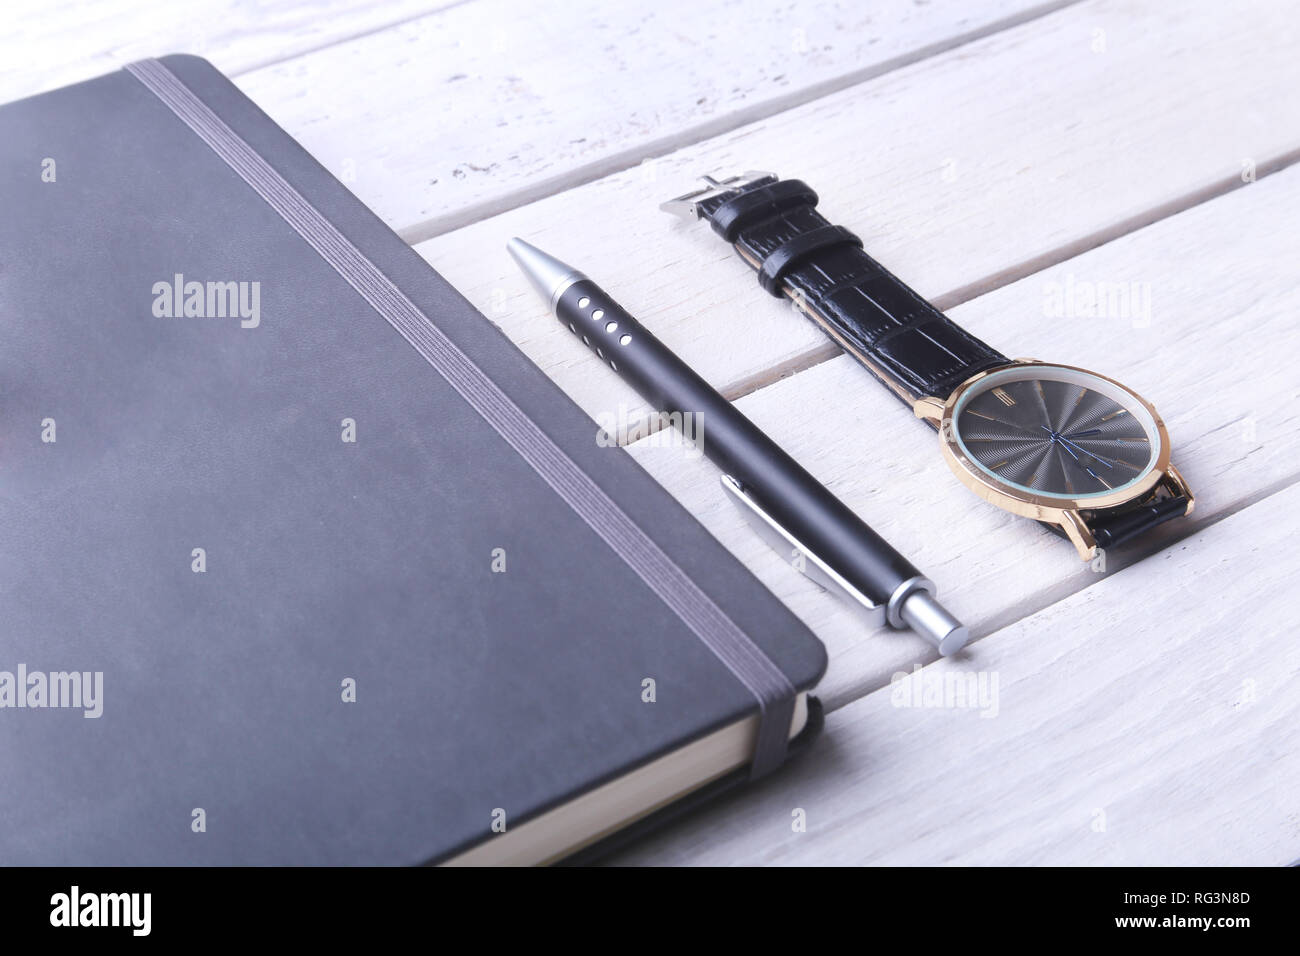 Accessories for business. Watch, notepad and pen on wooden background. Top view composition - Stock Image